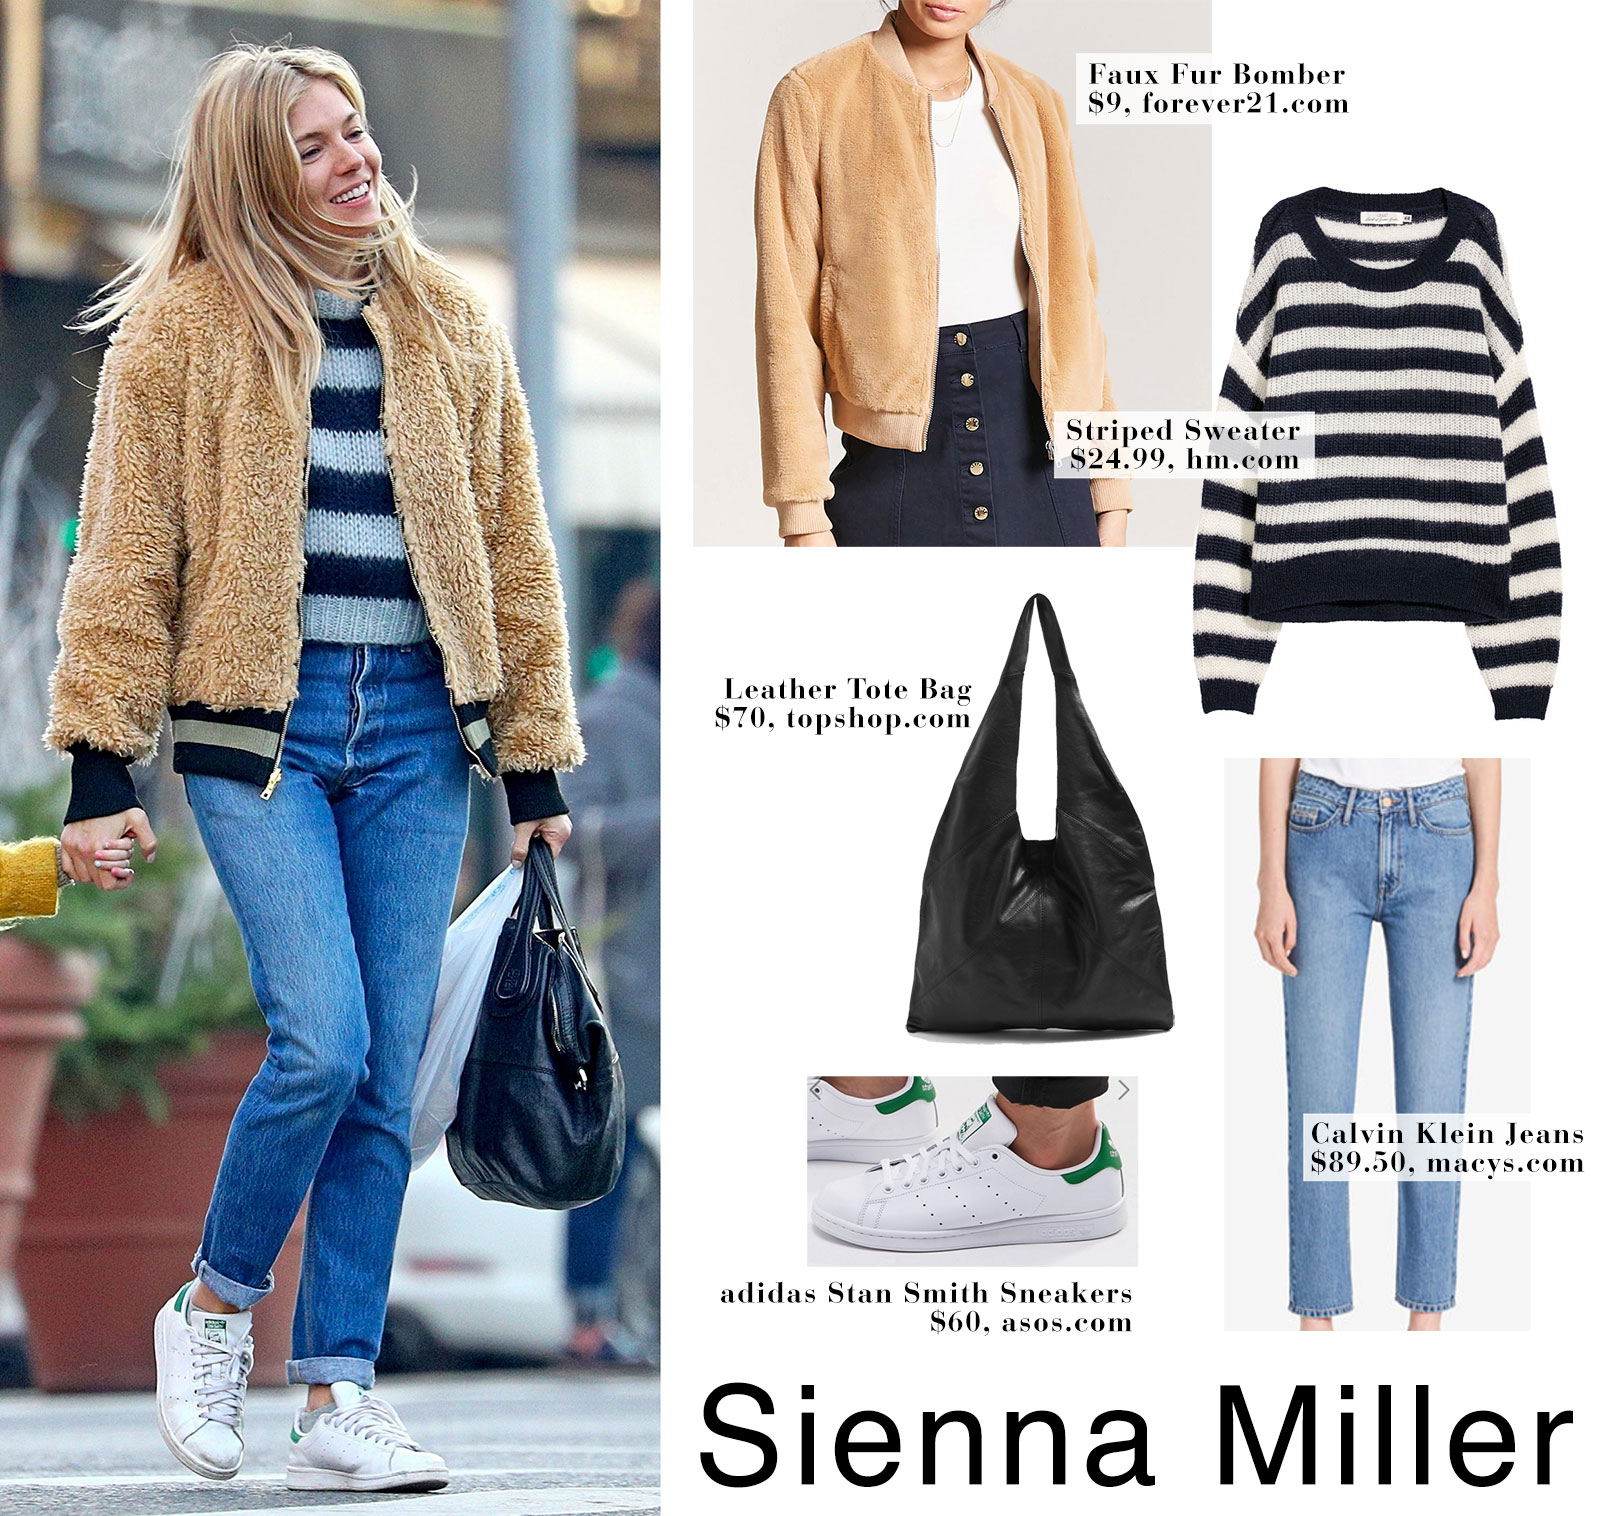 8a2779b8dbb Sienna Miller wears a faux fur bomber jacket with Adidas sneakers with  daughter Marlowe while out